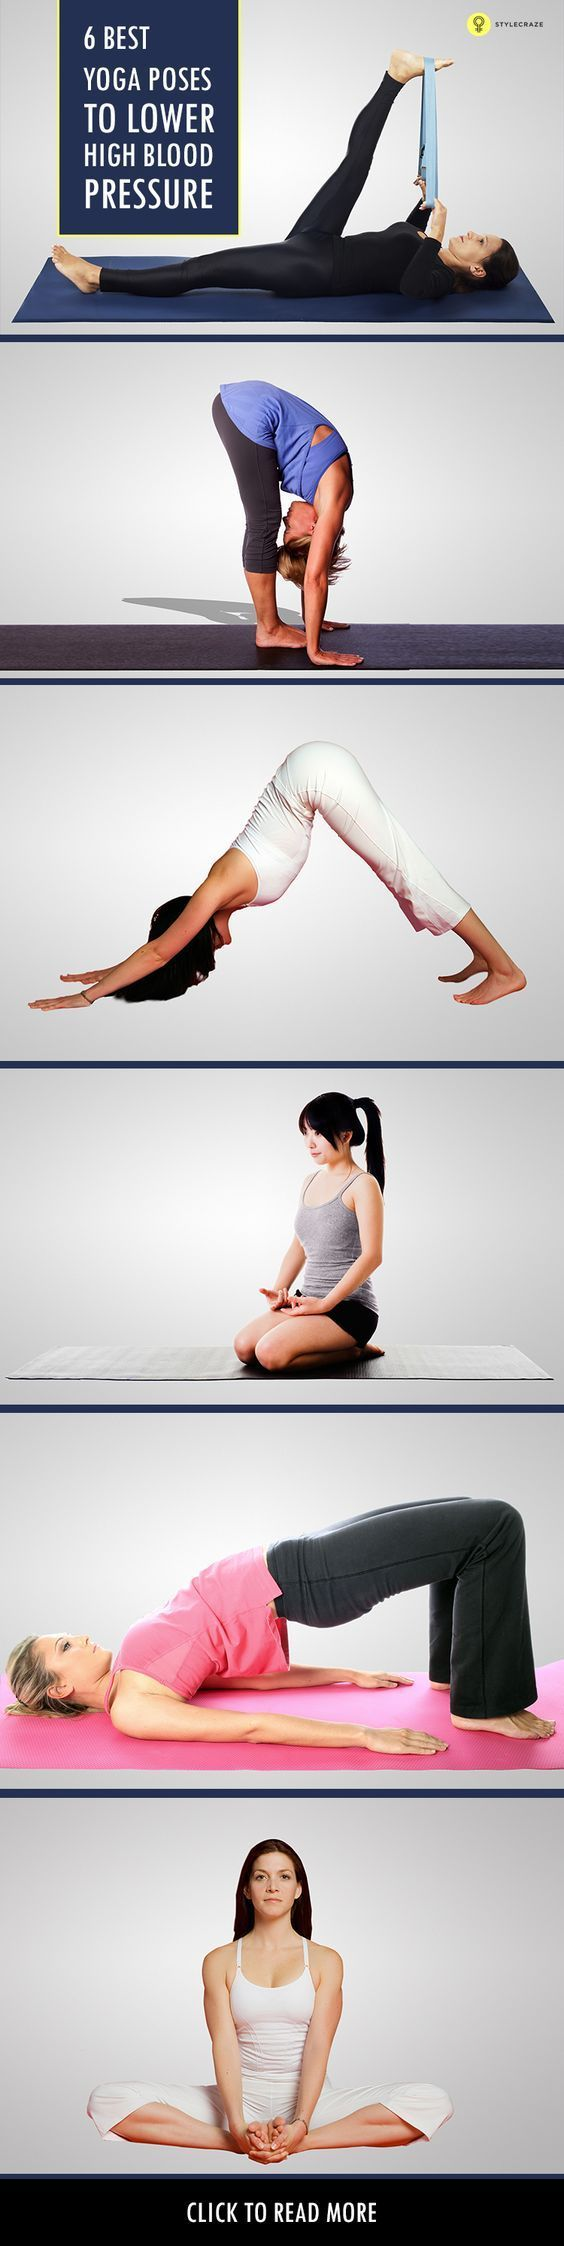 10+ Yoga poses for high blood pressure trends